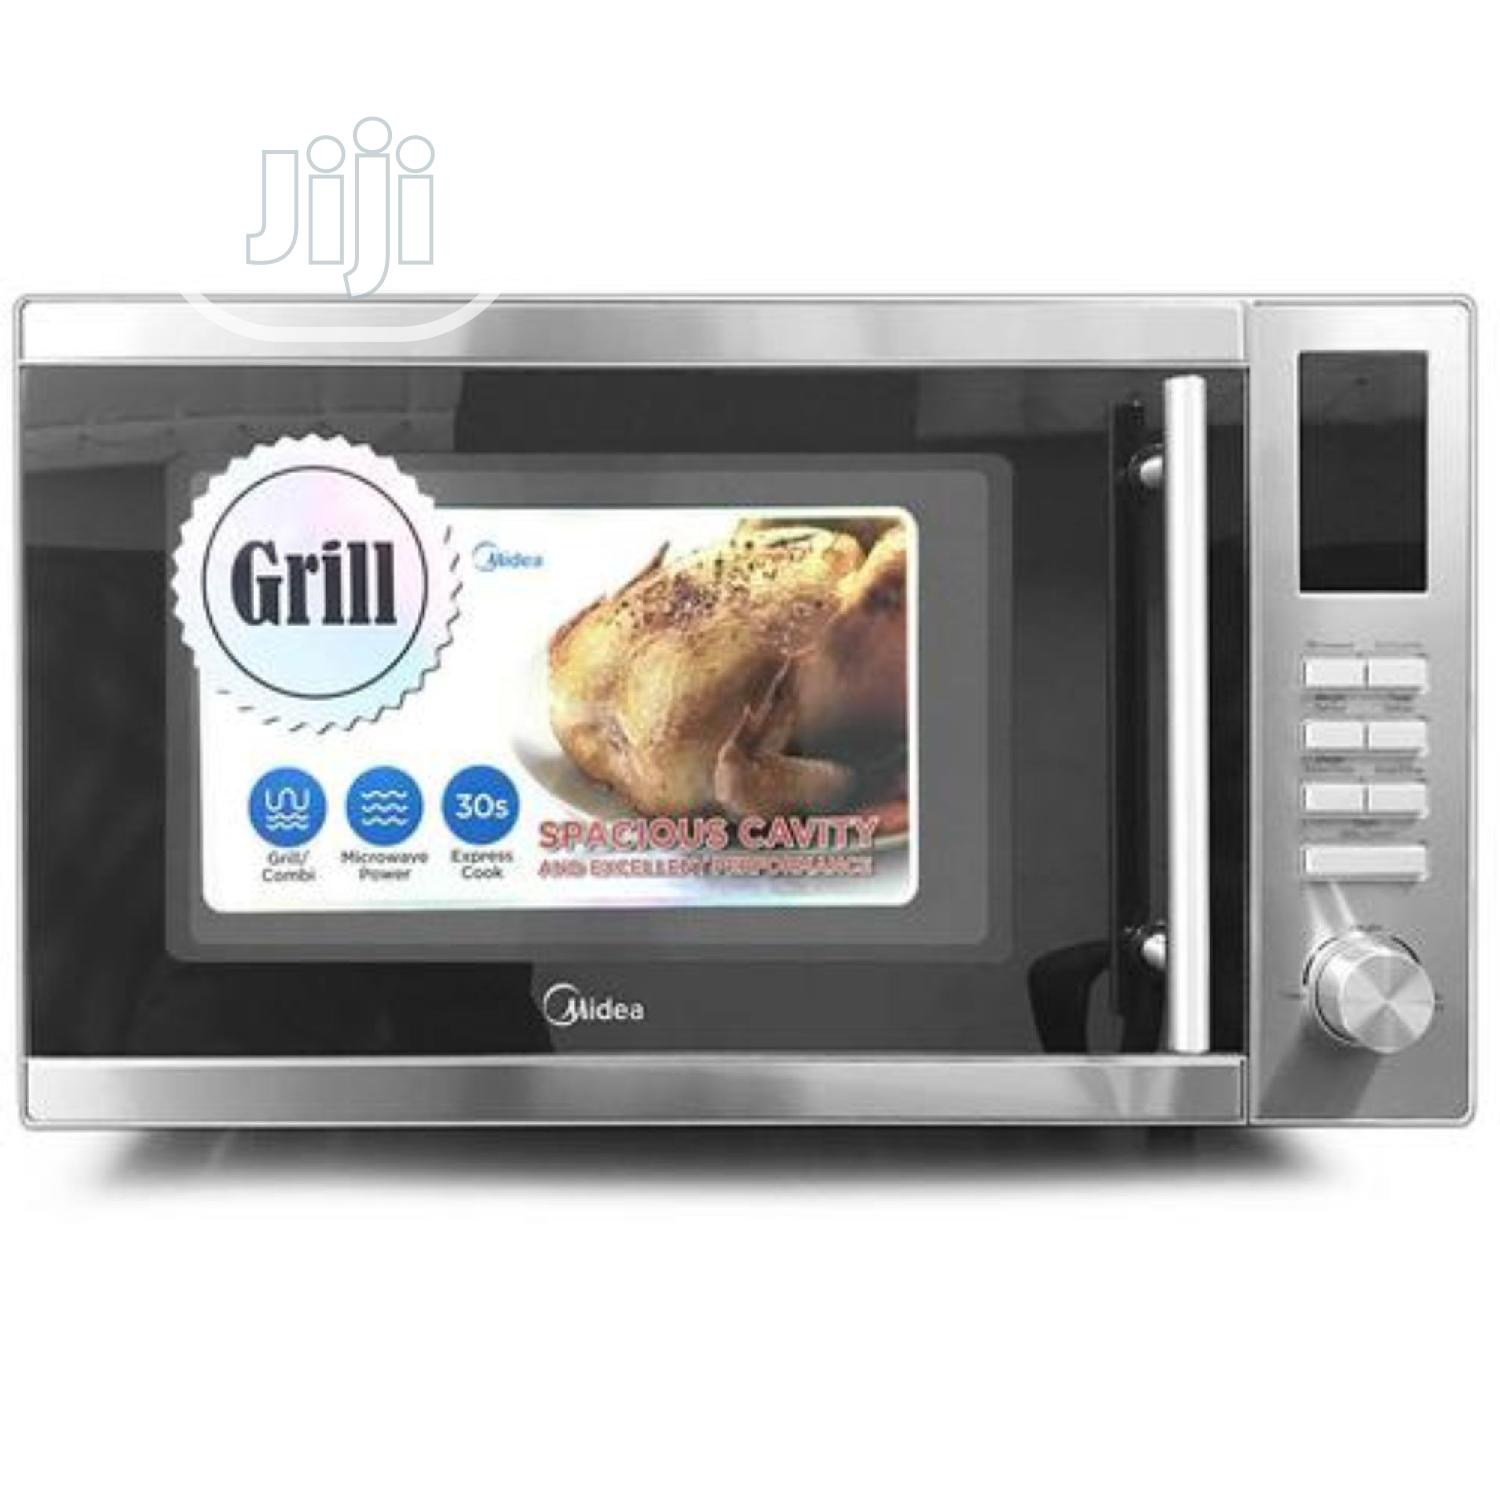 Archive: Midea Microwave Oven Ac925eyg 25lts, Silver Digital Control